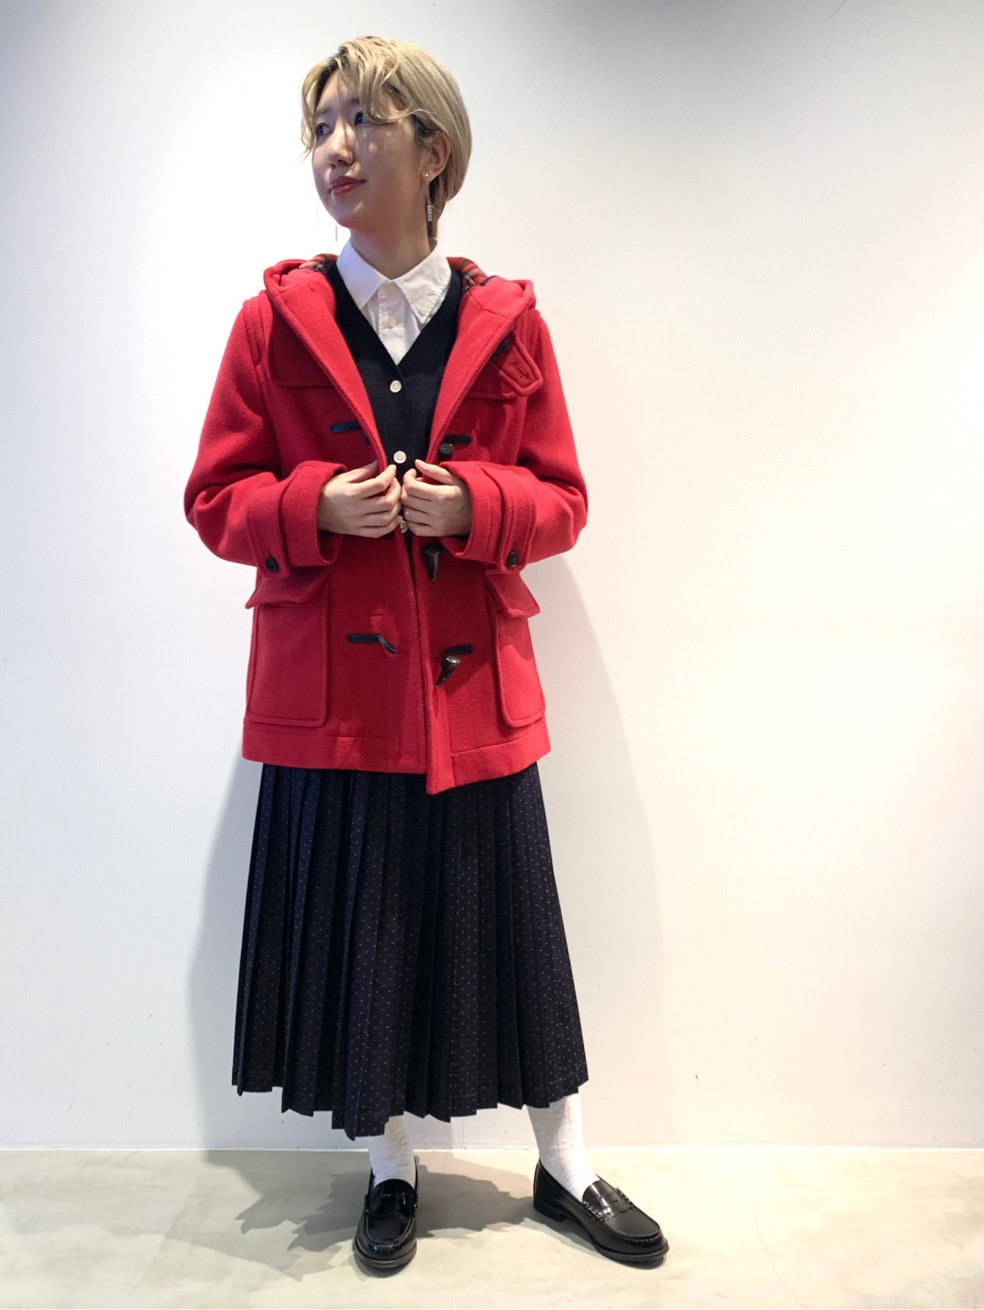 Dot and Stripes CHILD WOMAN ラフォーレ原宿 身長:160cm 2020.12.22